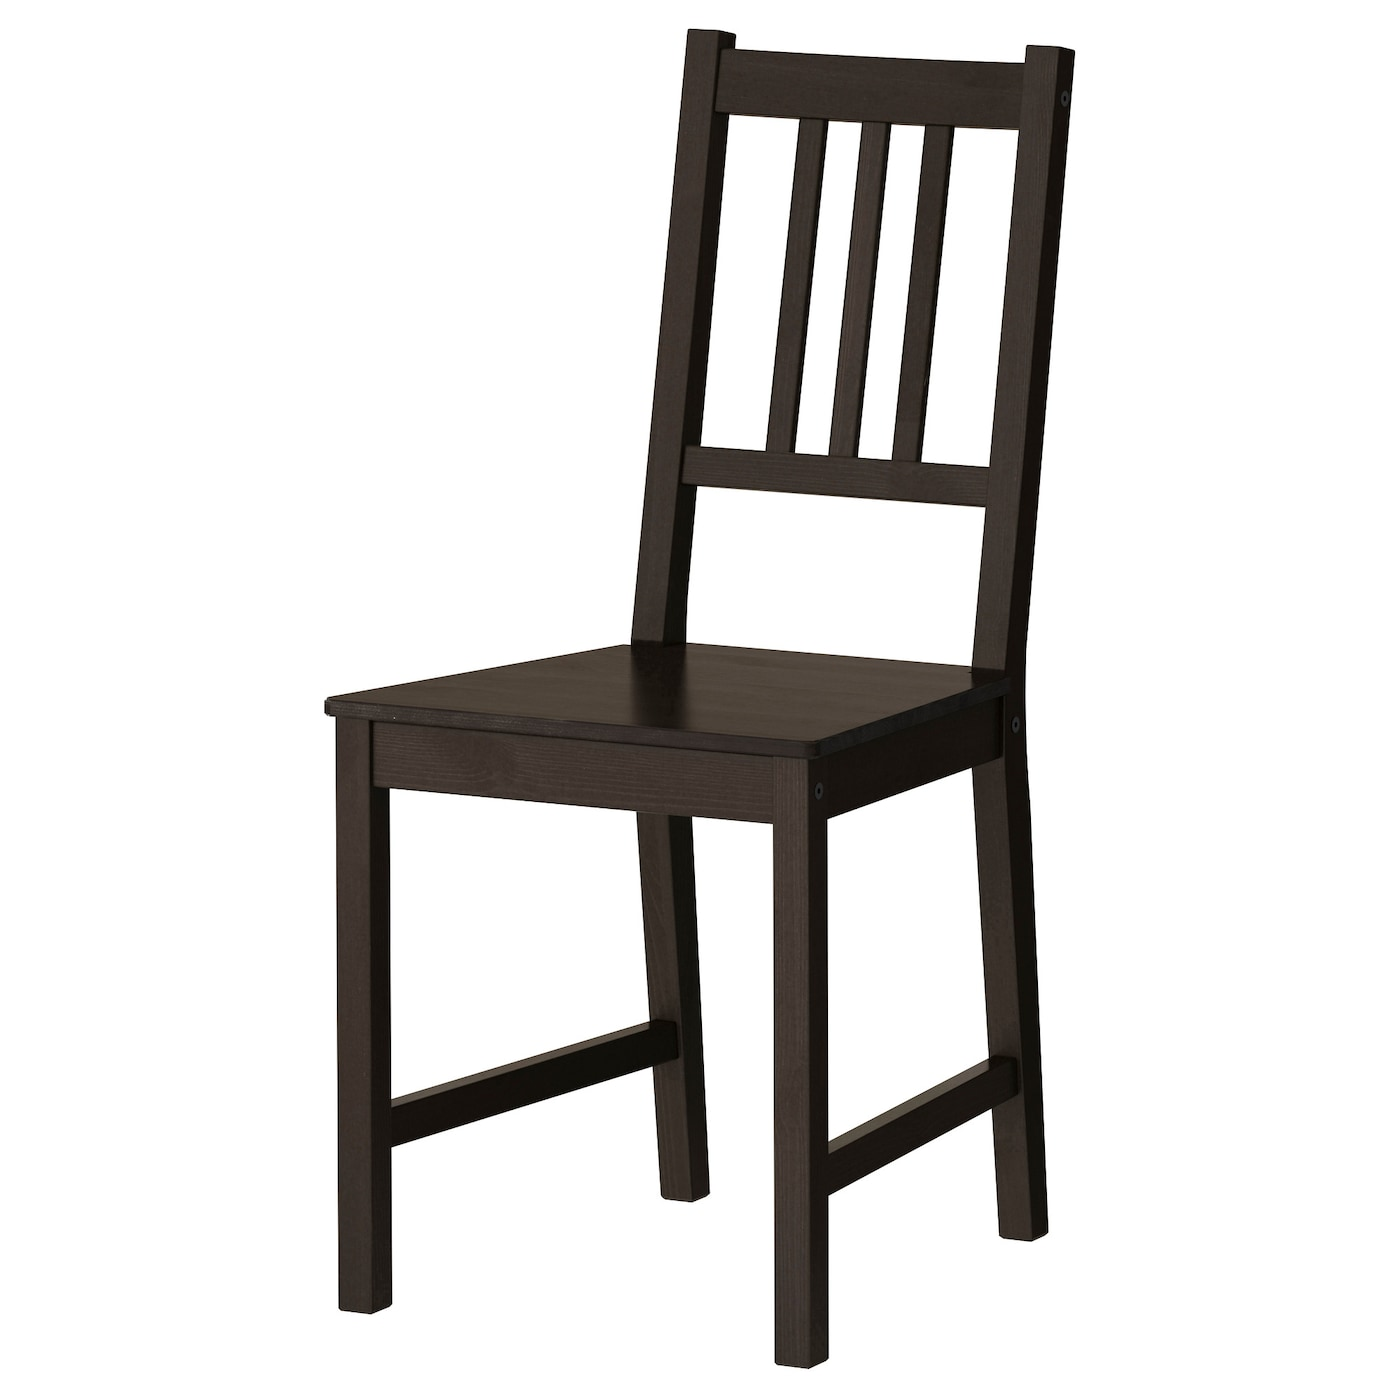 Stefan chair brown black ikea